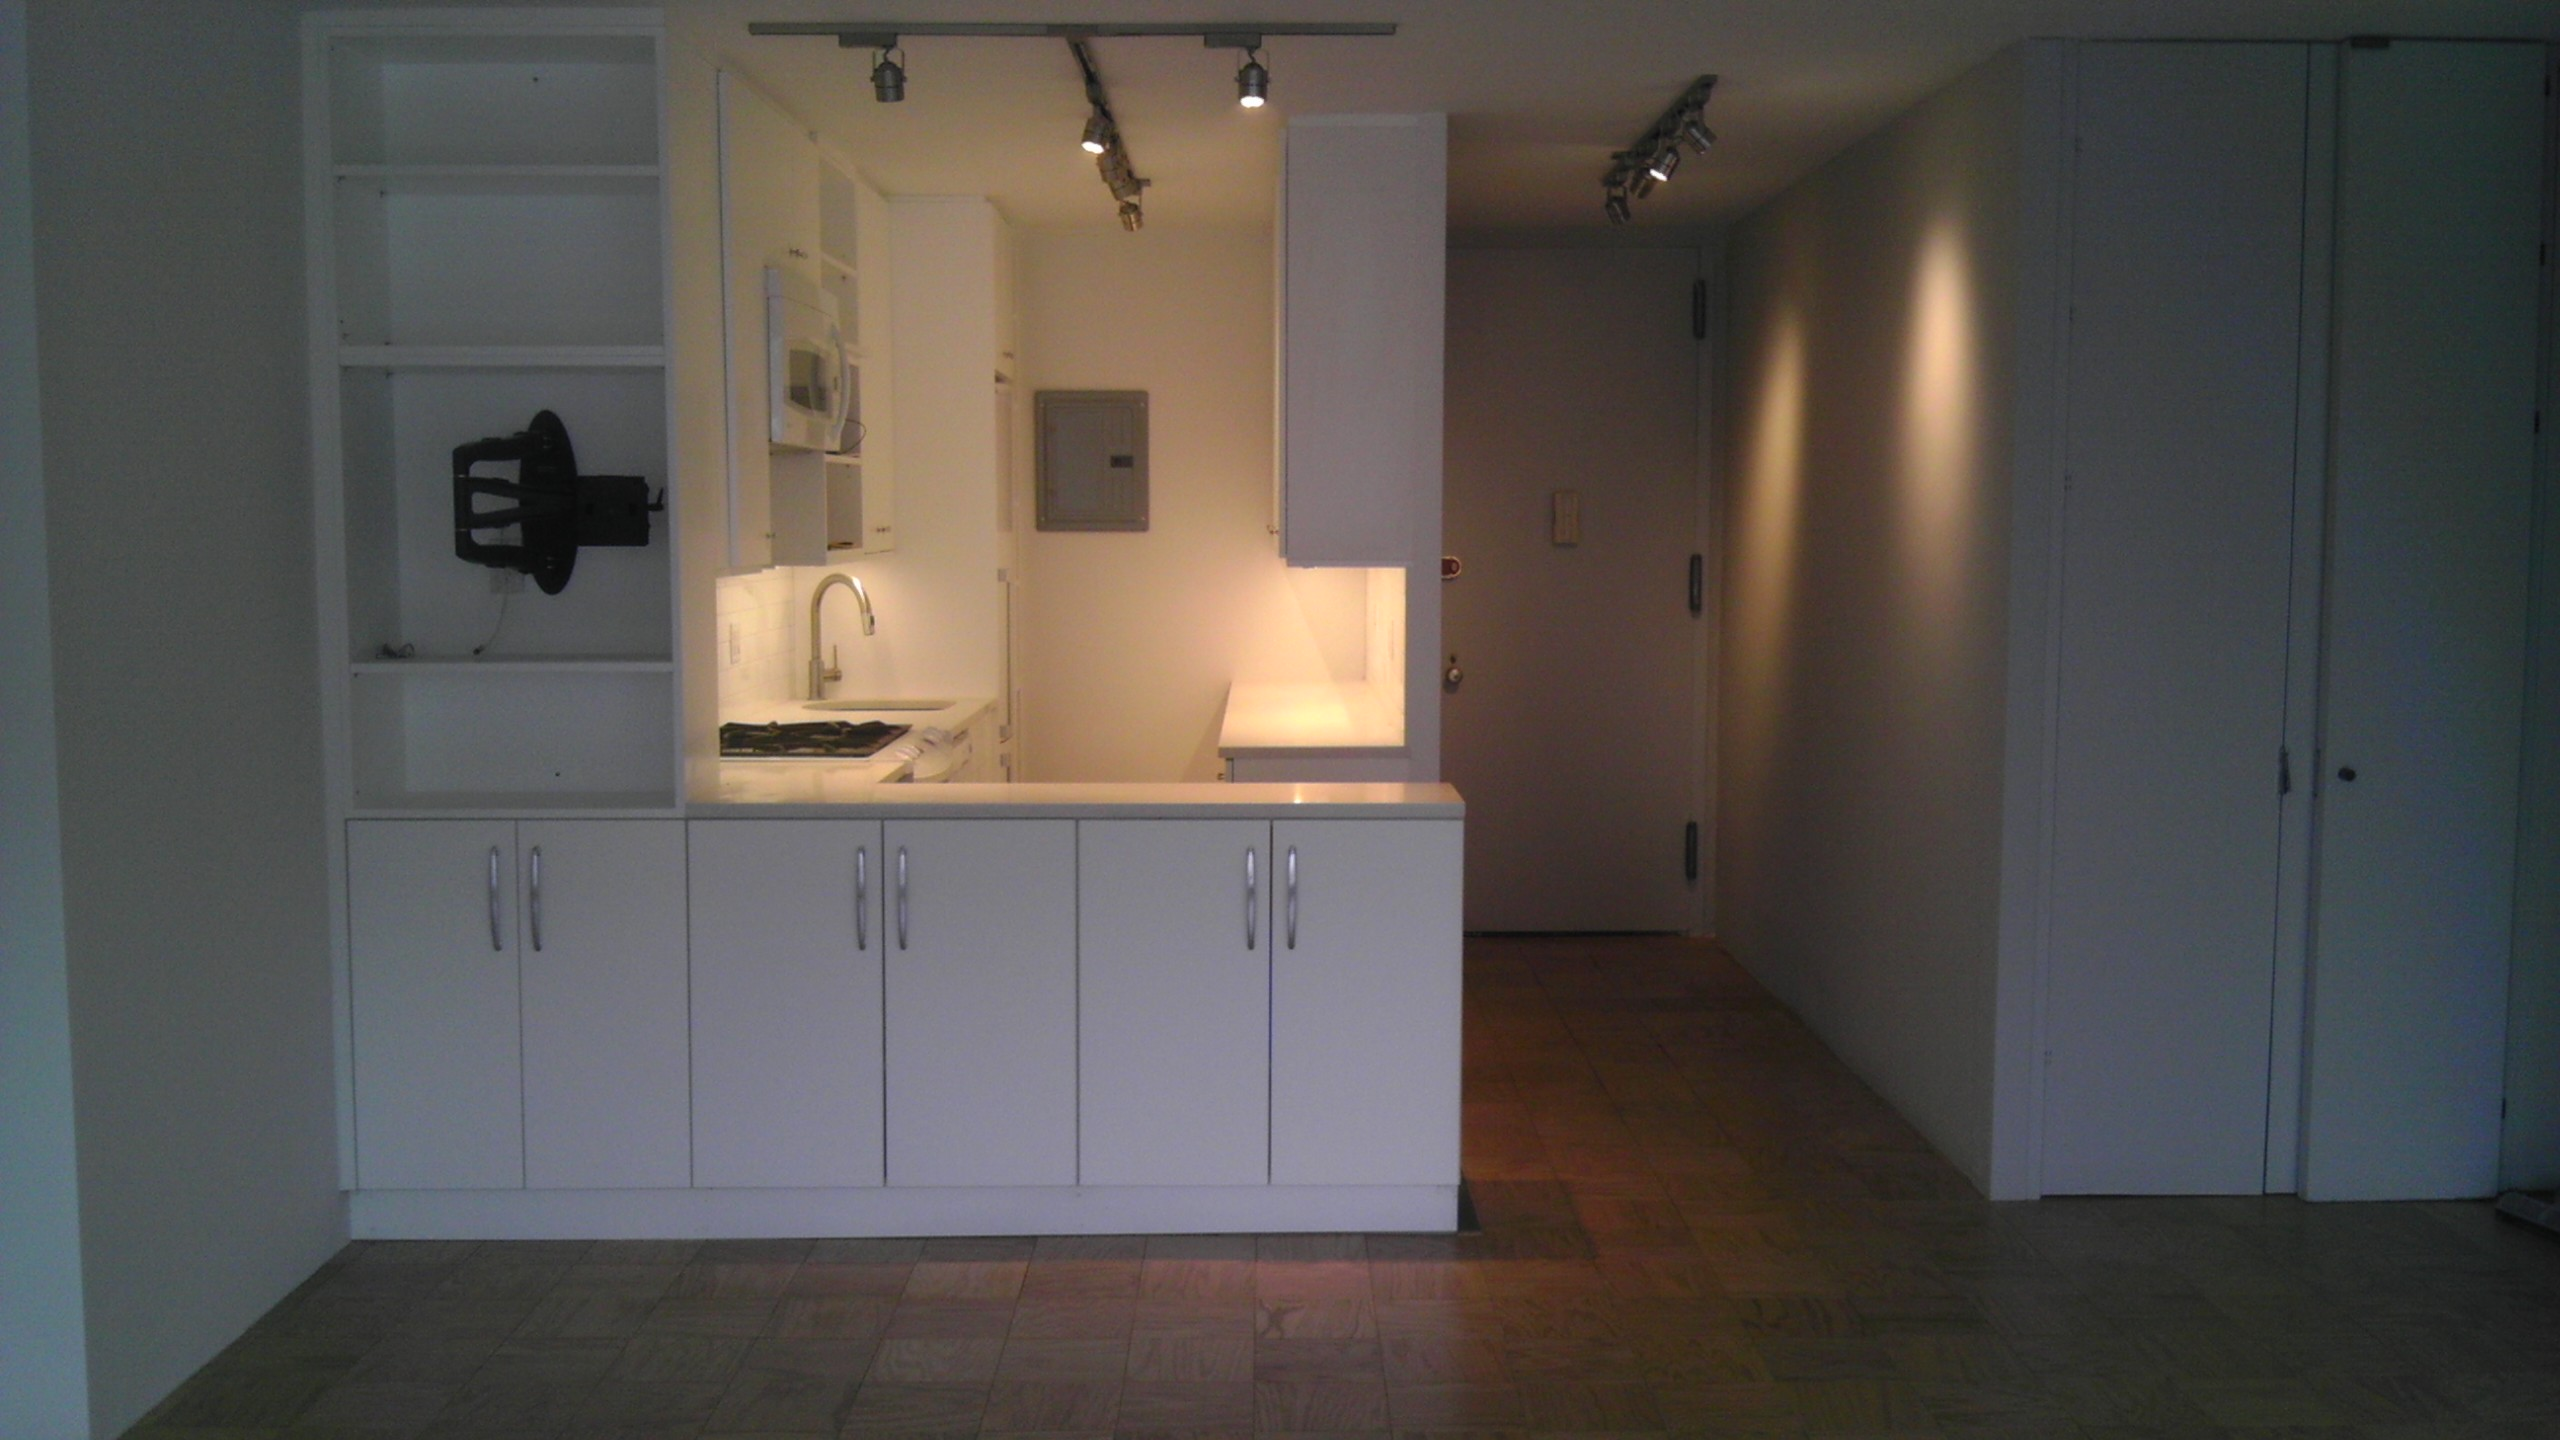 Kitchens And Baths Suffolk County Home Improvements Remodeling - Bathroom remodel long island ny